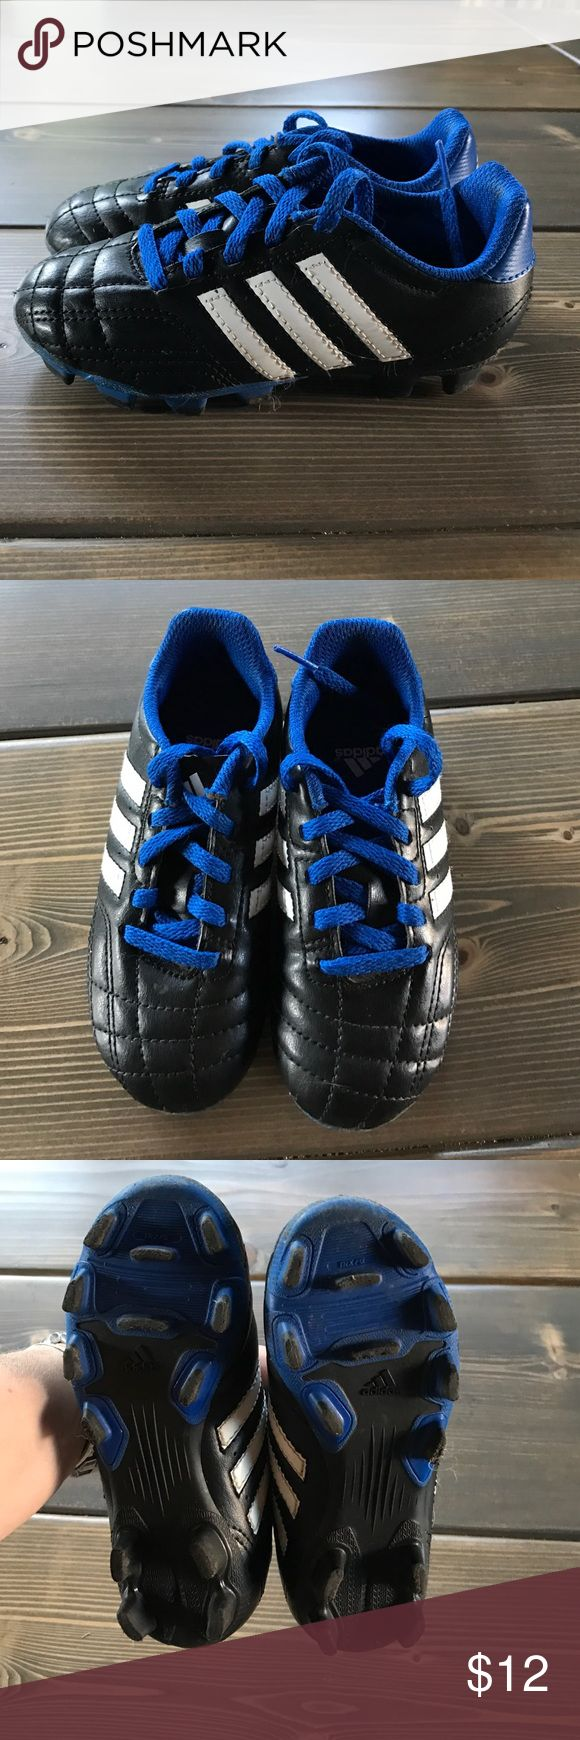 Adidas Soccer Cleats Adidas Soccer Cleats blue & black size 11 toddler/little kid Adidas Shoes Sneakers